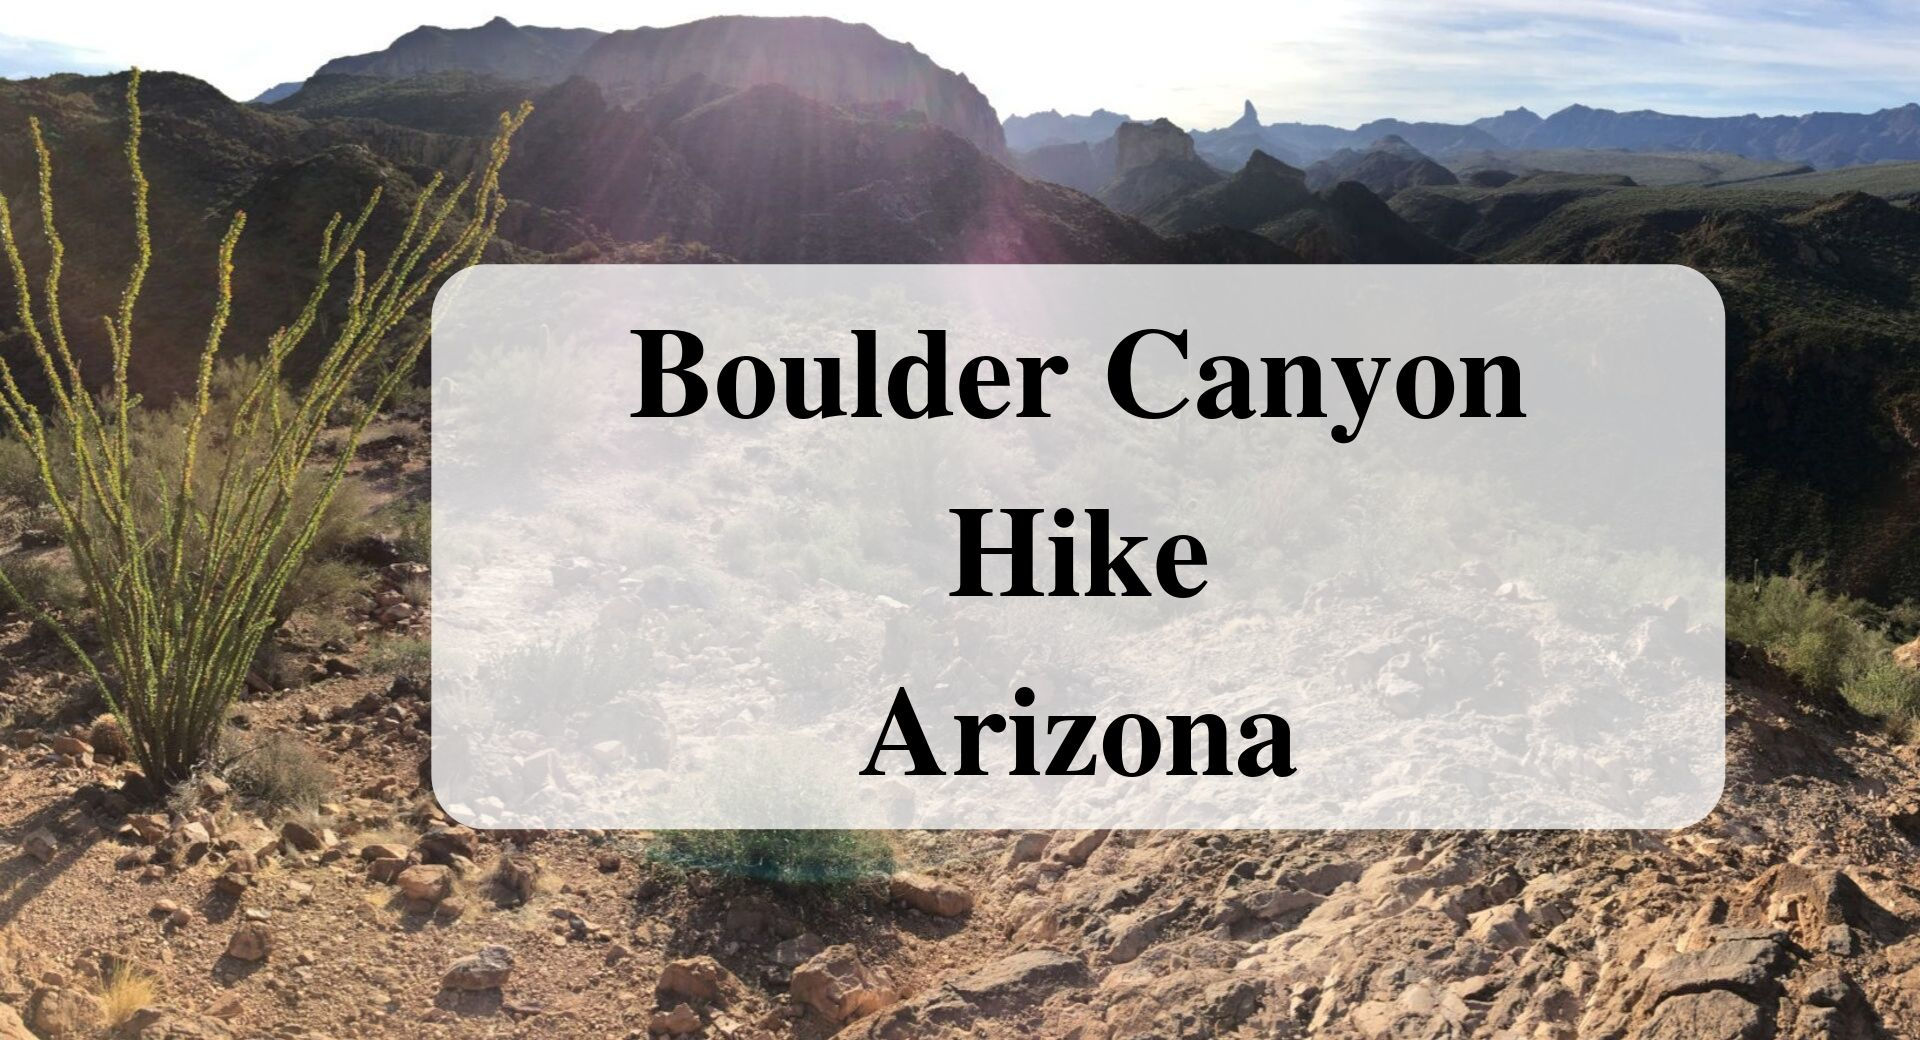 Boulder Canyon Hike Arizona main